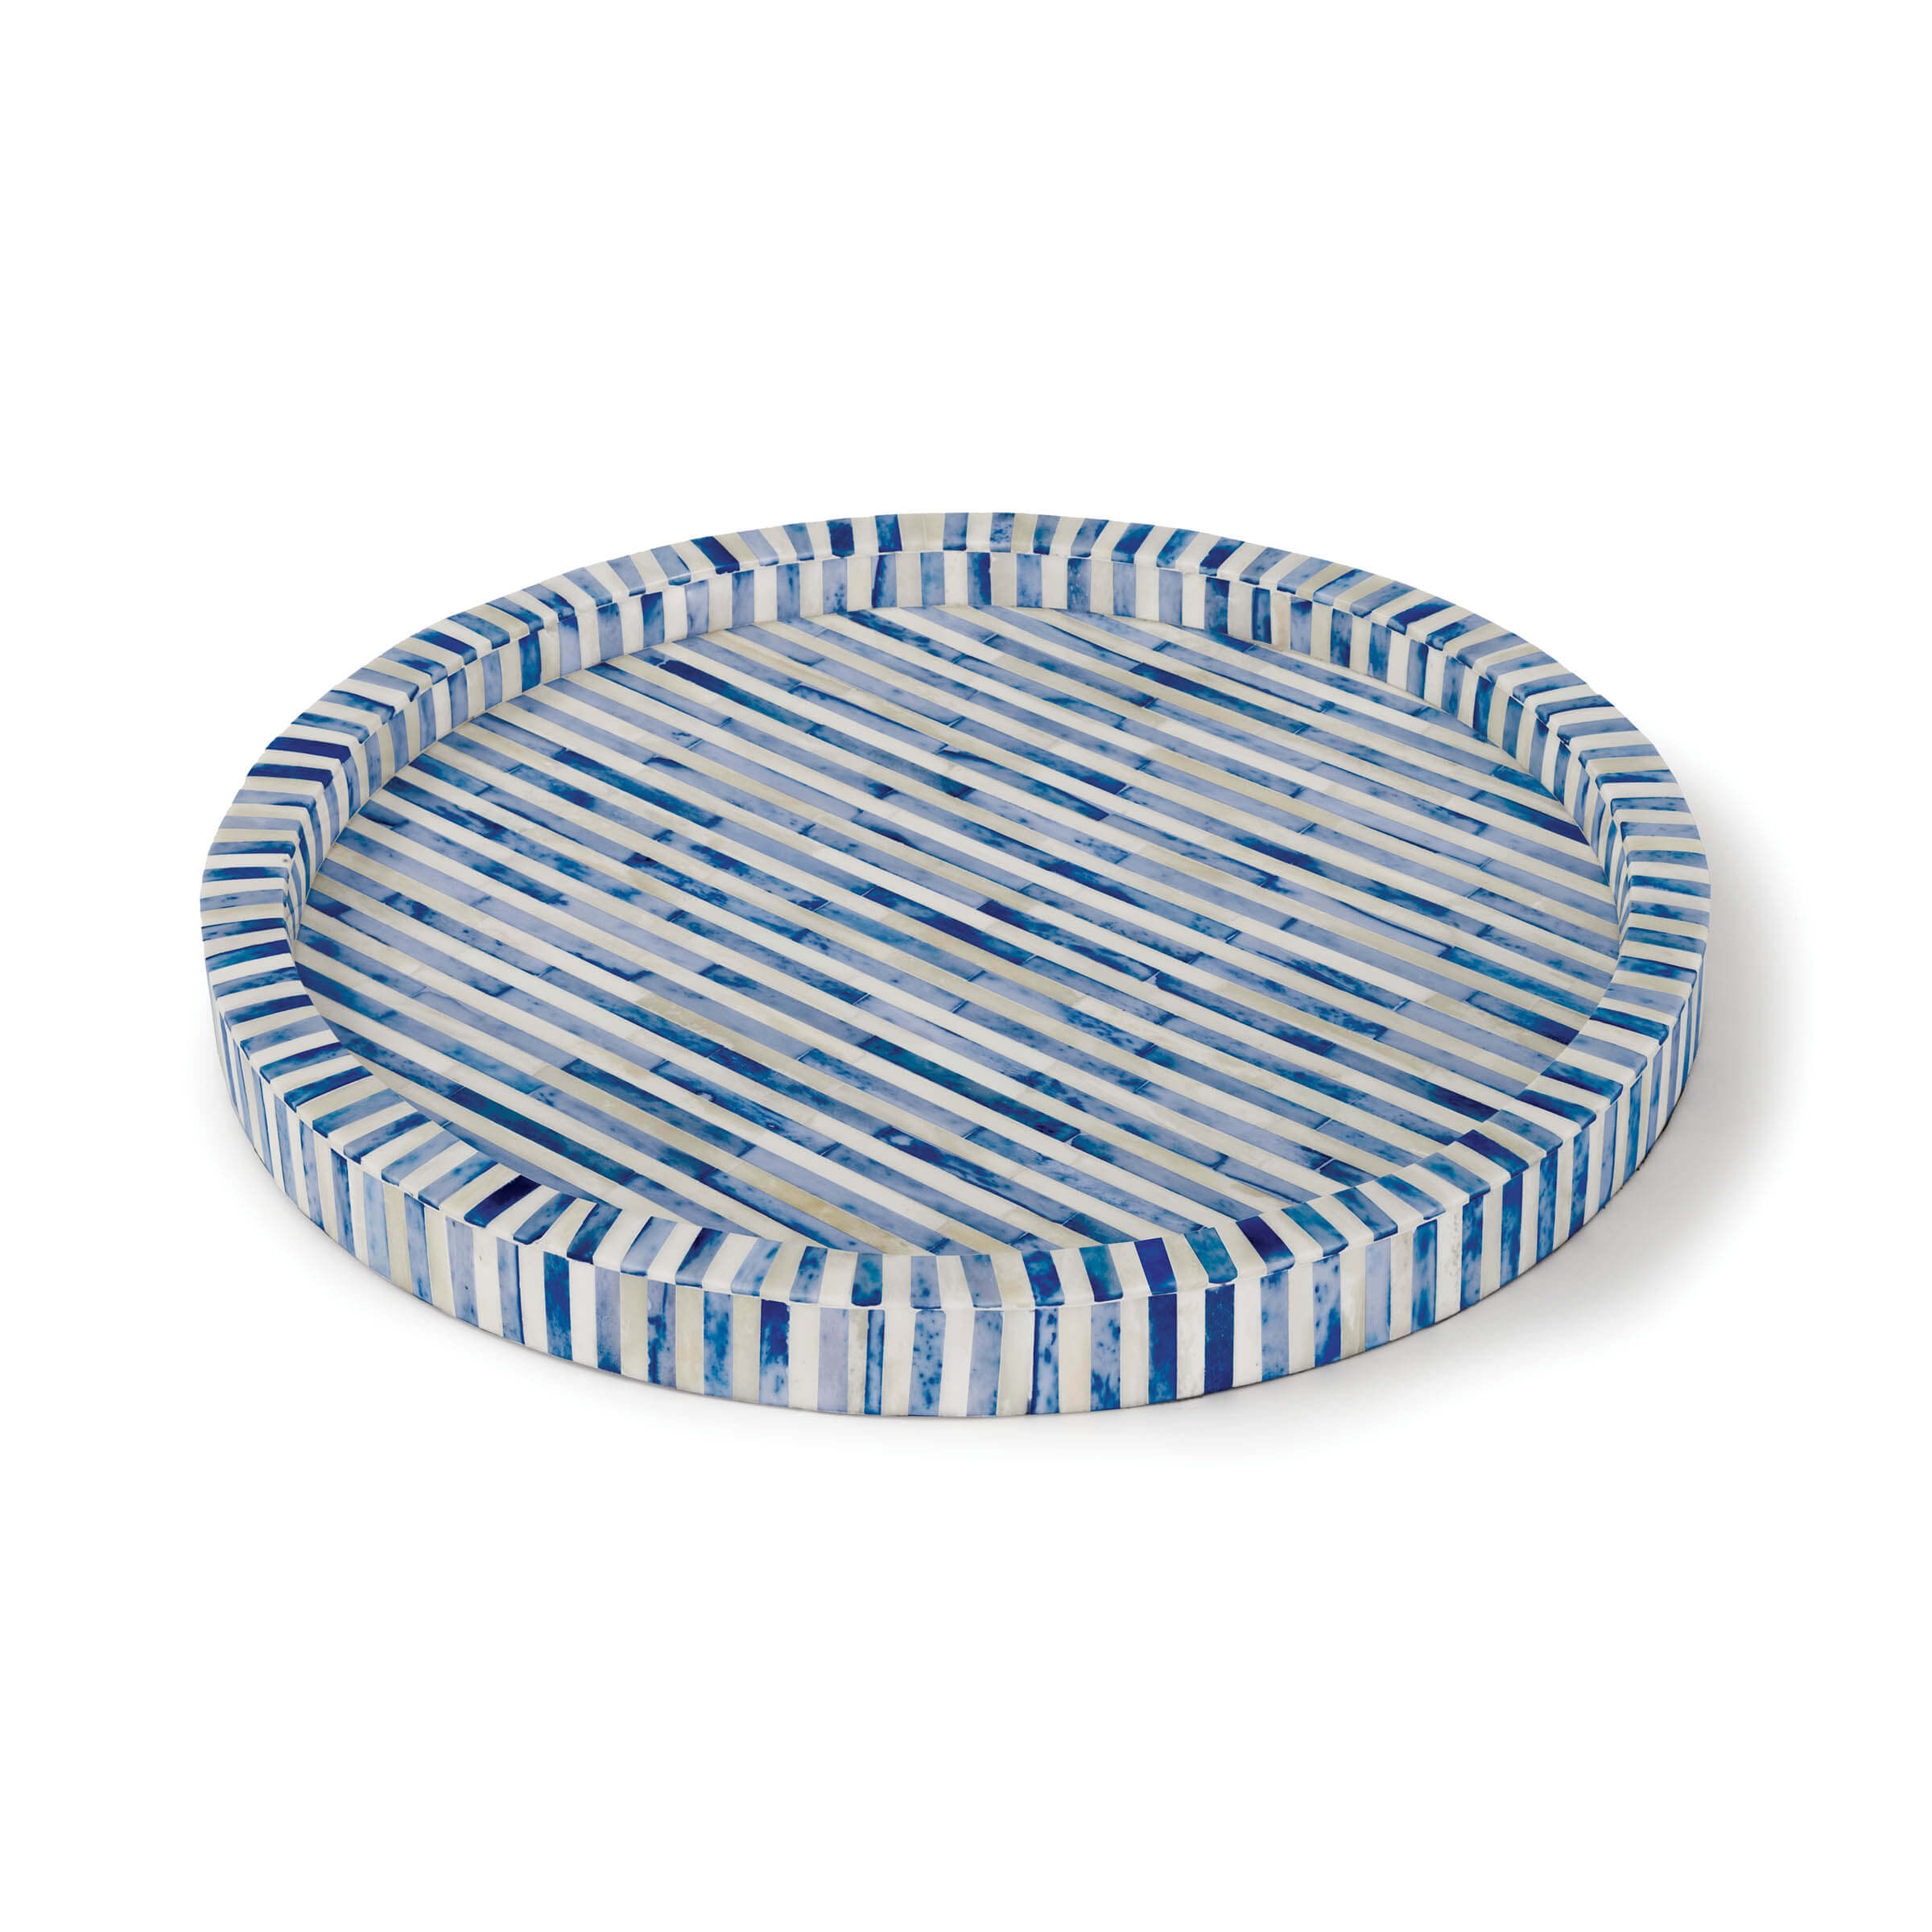 Bone and Indigo Tray Round | Regina Andrew